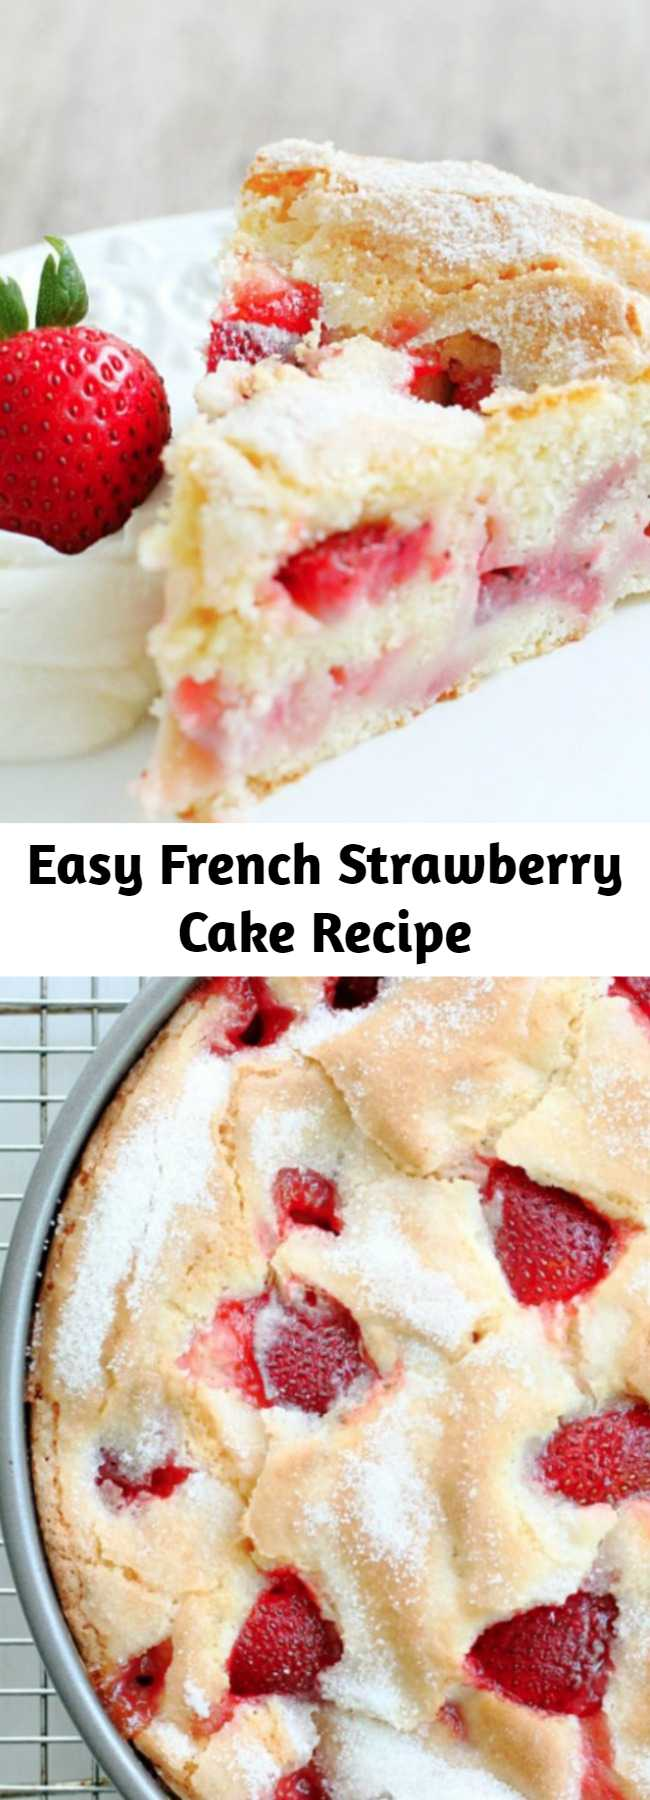 Easy French Strawberry Cake Recipe - French Strawberry Cake makes a stunning presentation straight out of the pan it is baked in - plus it is mixed together in just one bowl. An easy and impressive cake for strawberry season.